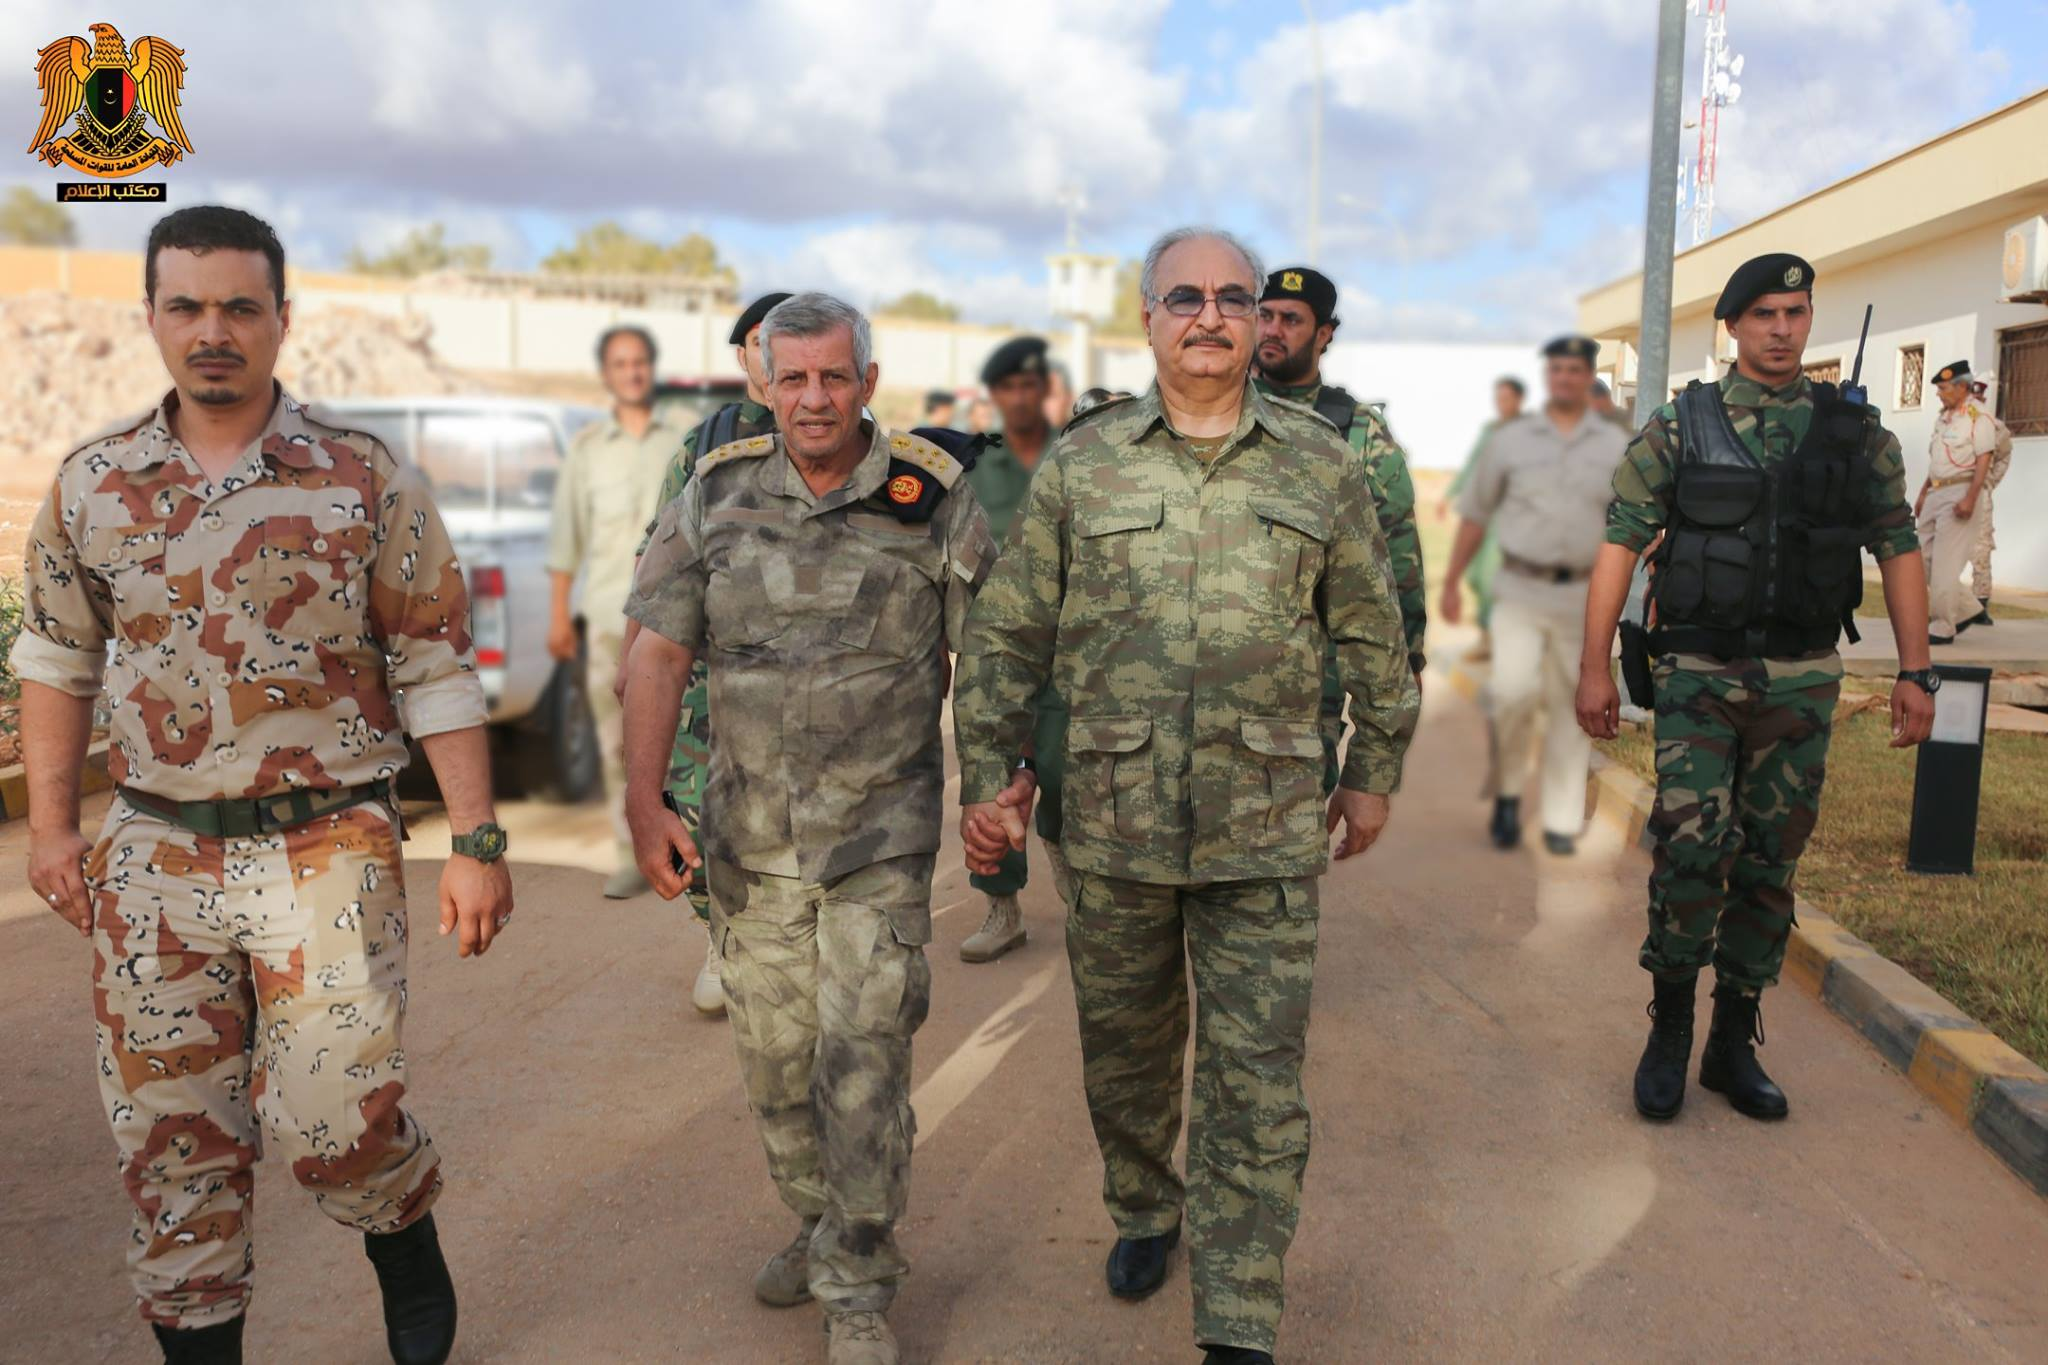 Khalifa Haftar meets with field commanders of the Libyan National Army on September 9, 2016 (photo via Media Office of the Libyan National Army Facebook page).